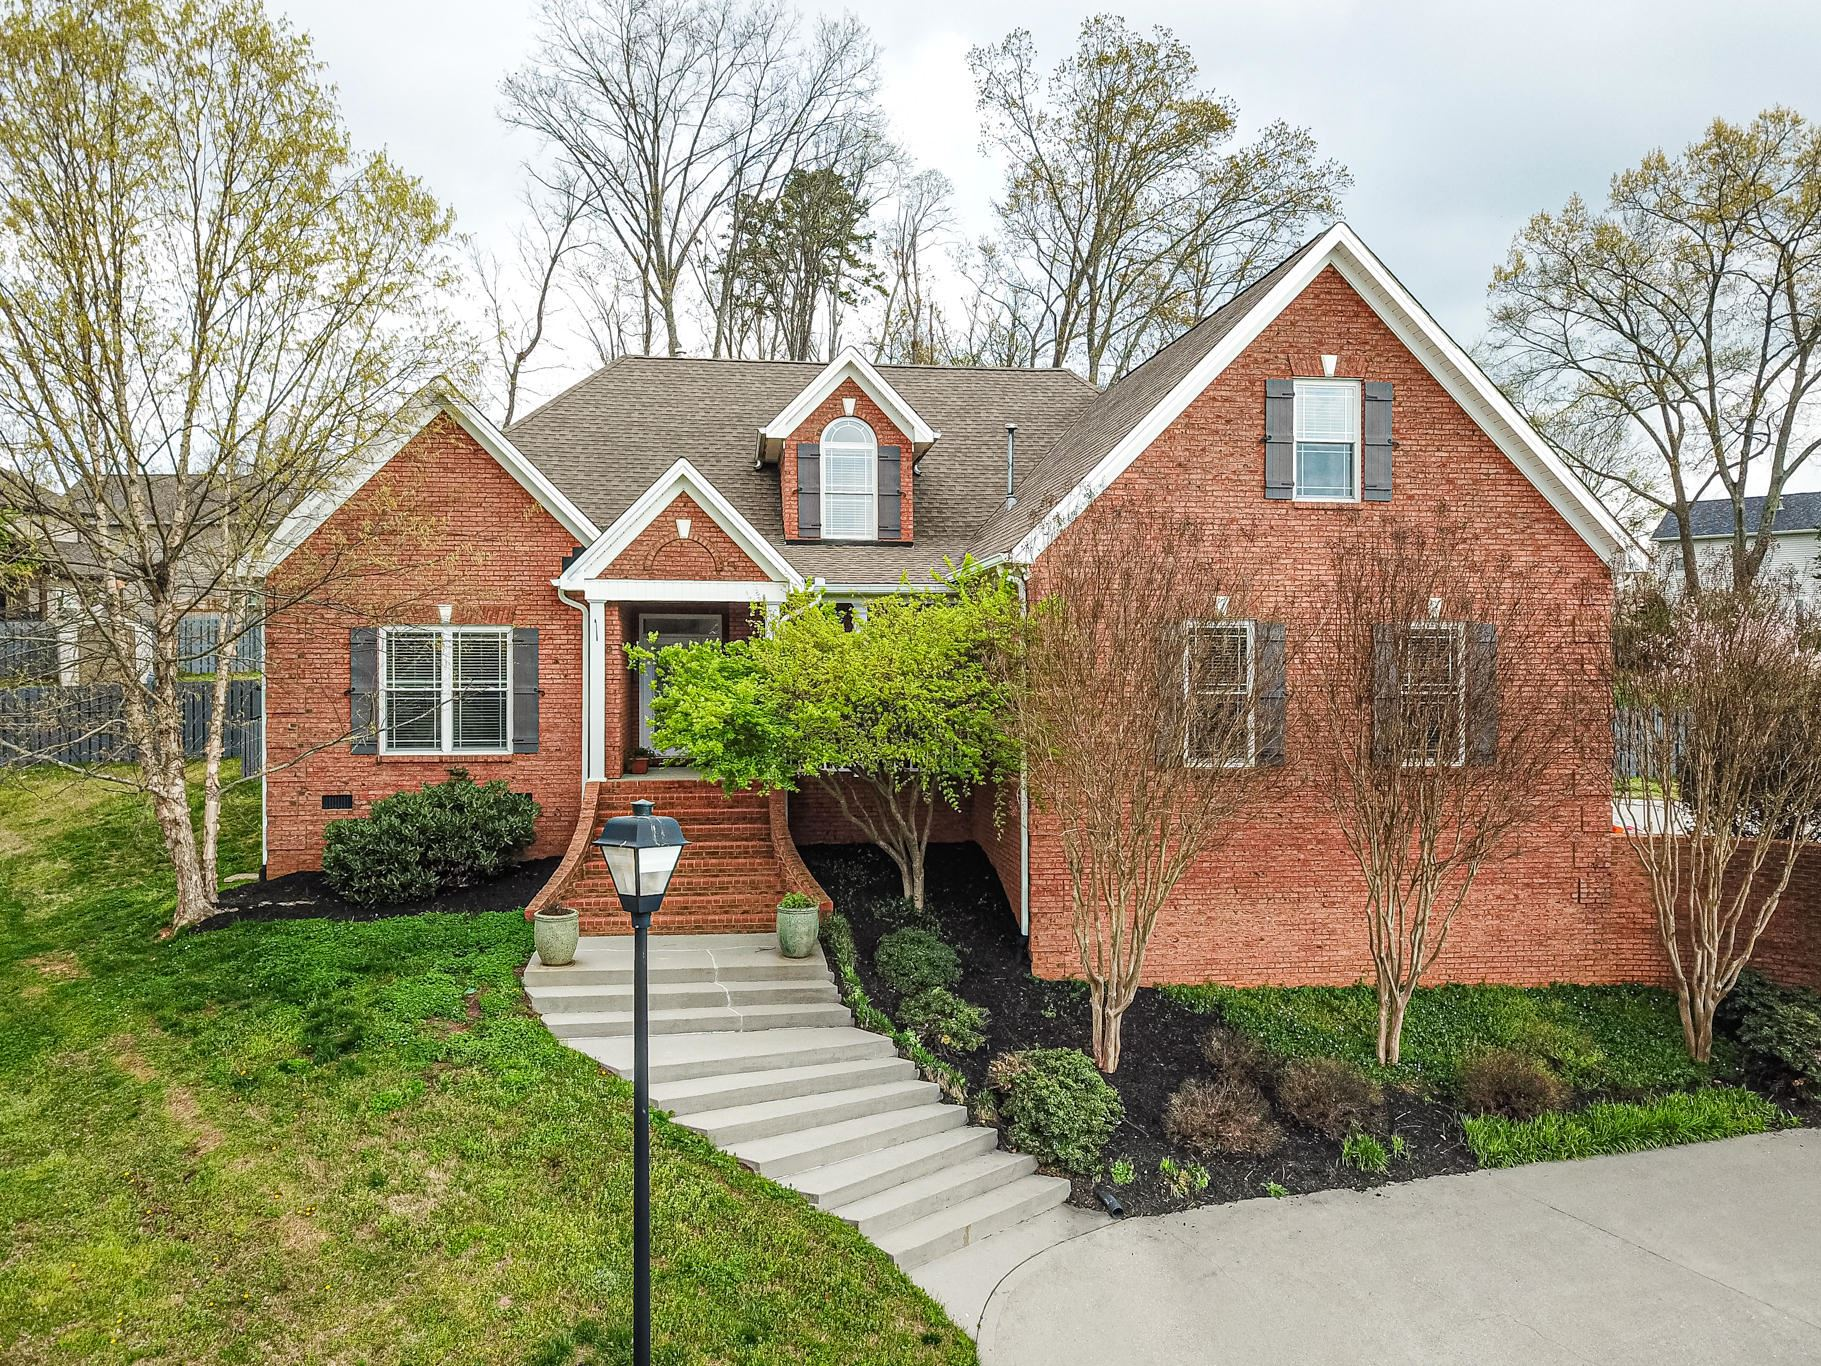 Photo of 10300 Eagle Spring Lane, Knoxville, TN 37932 (MLS # 1112607)